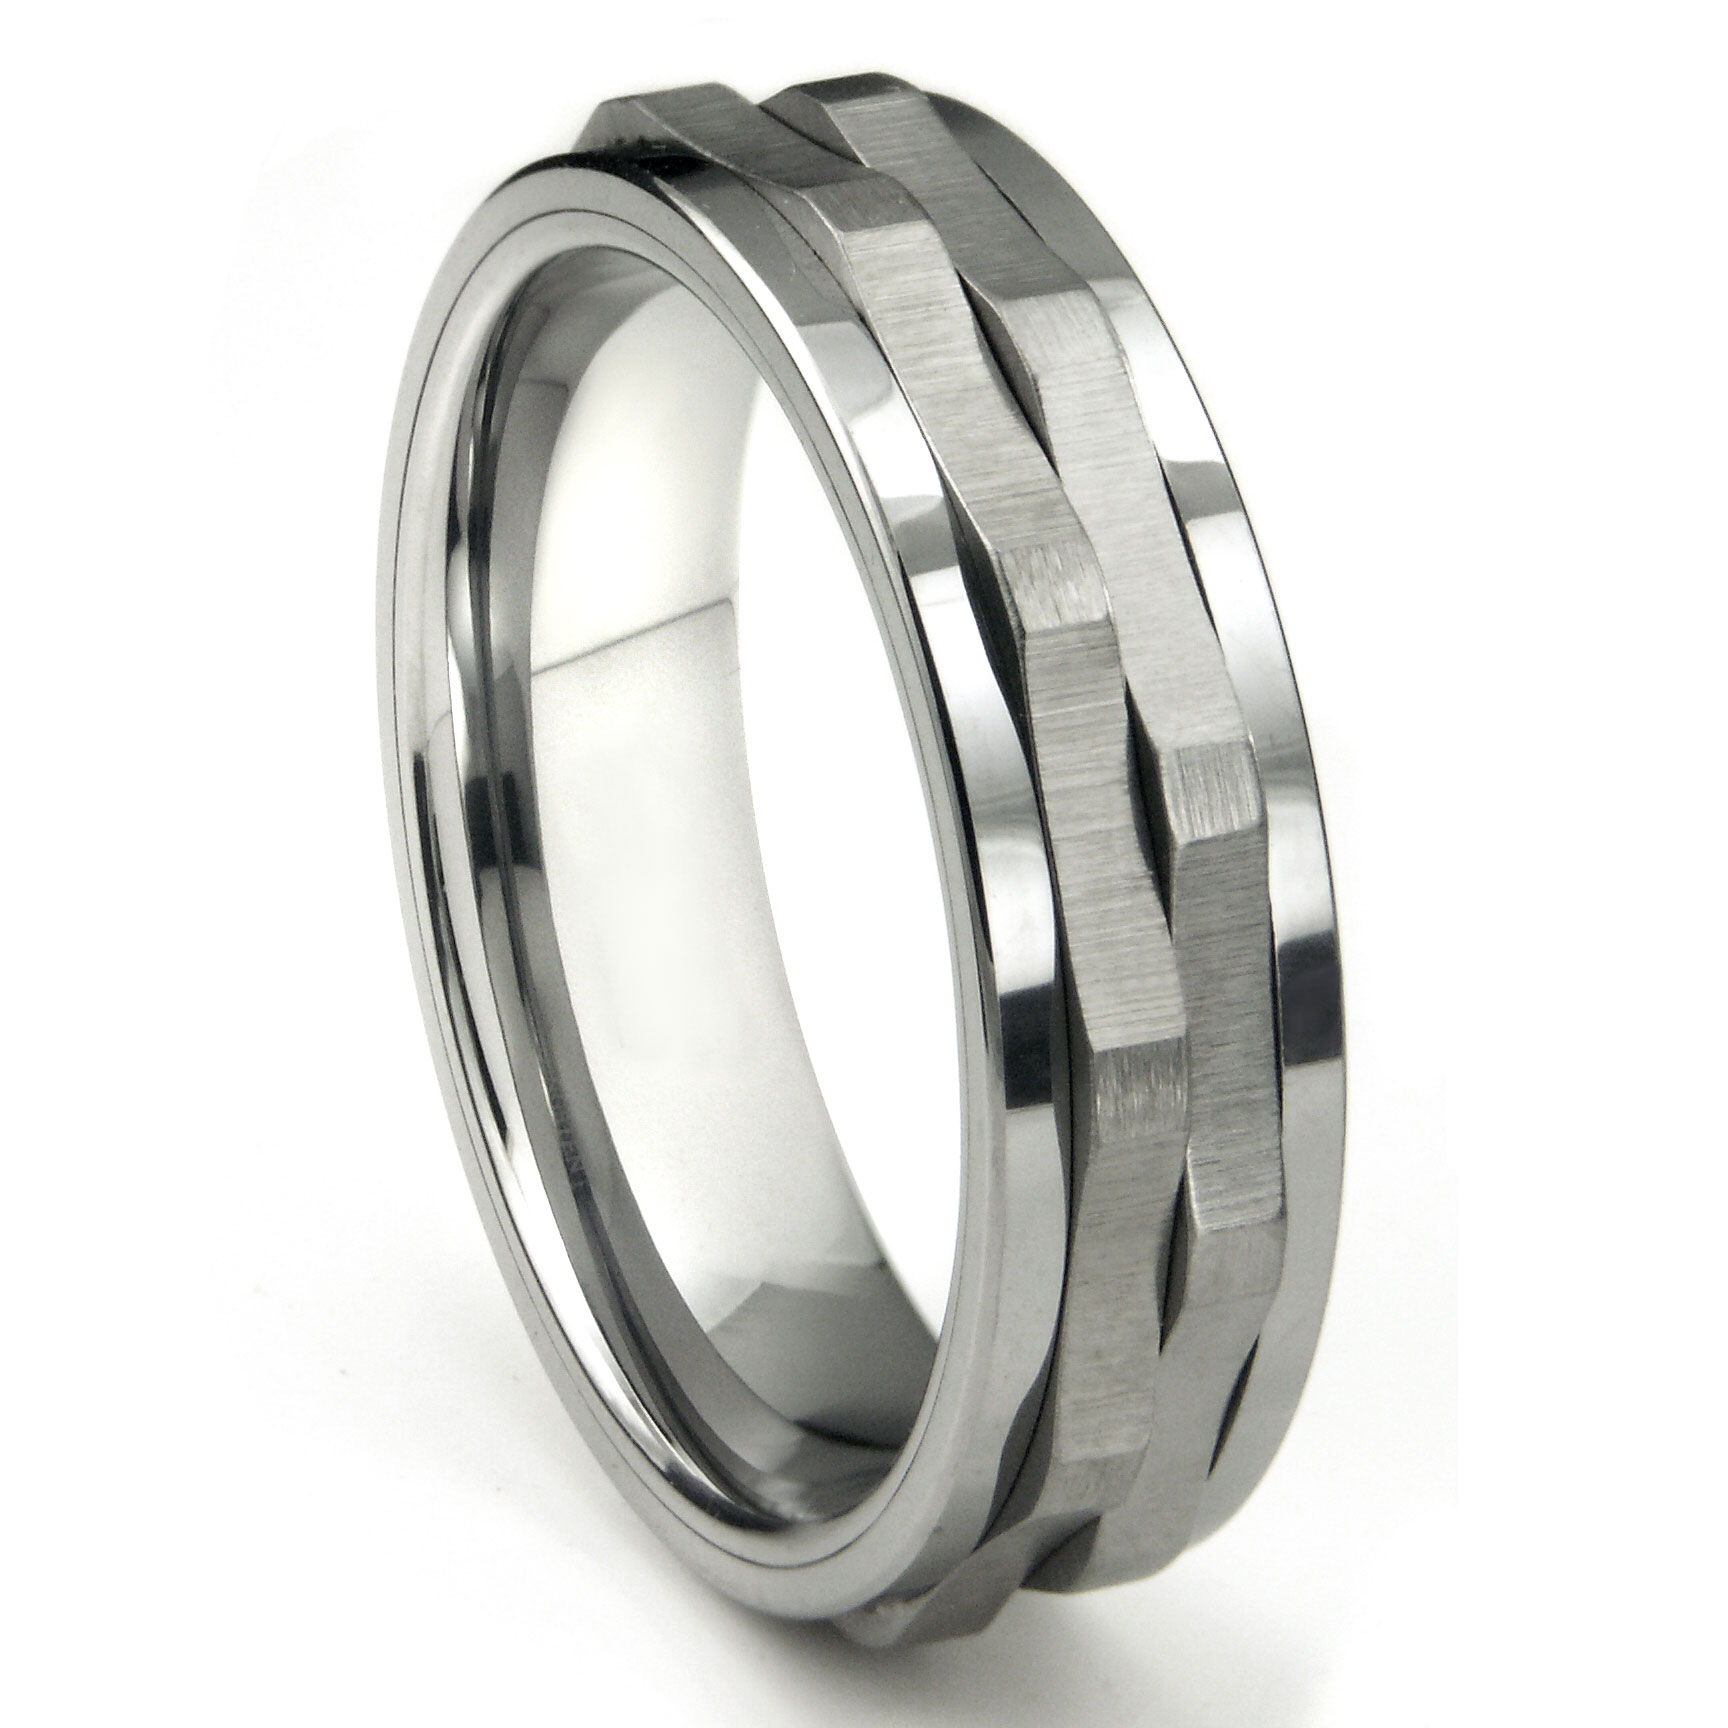 ninja star tungsten carbide spinning wedding band ring. Black Bedroom Furniture Sets. Home Design Ideas